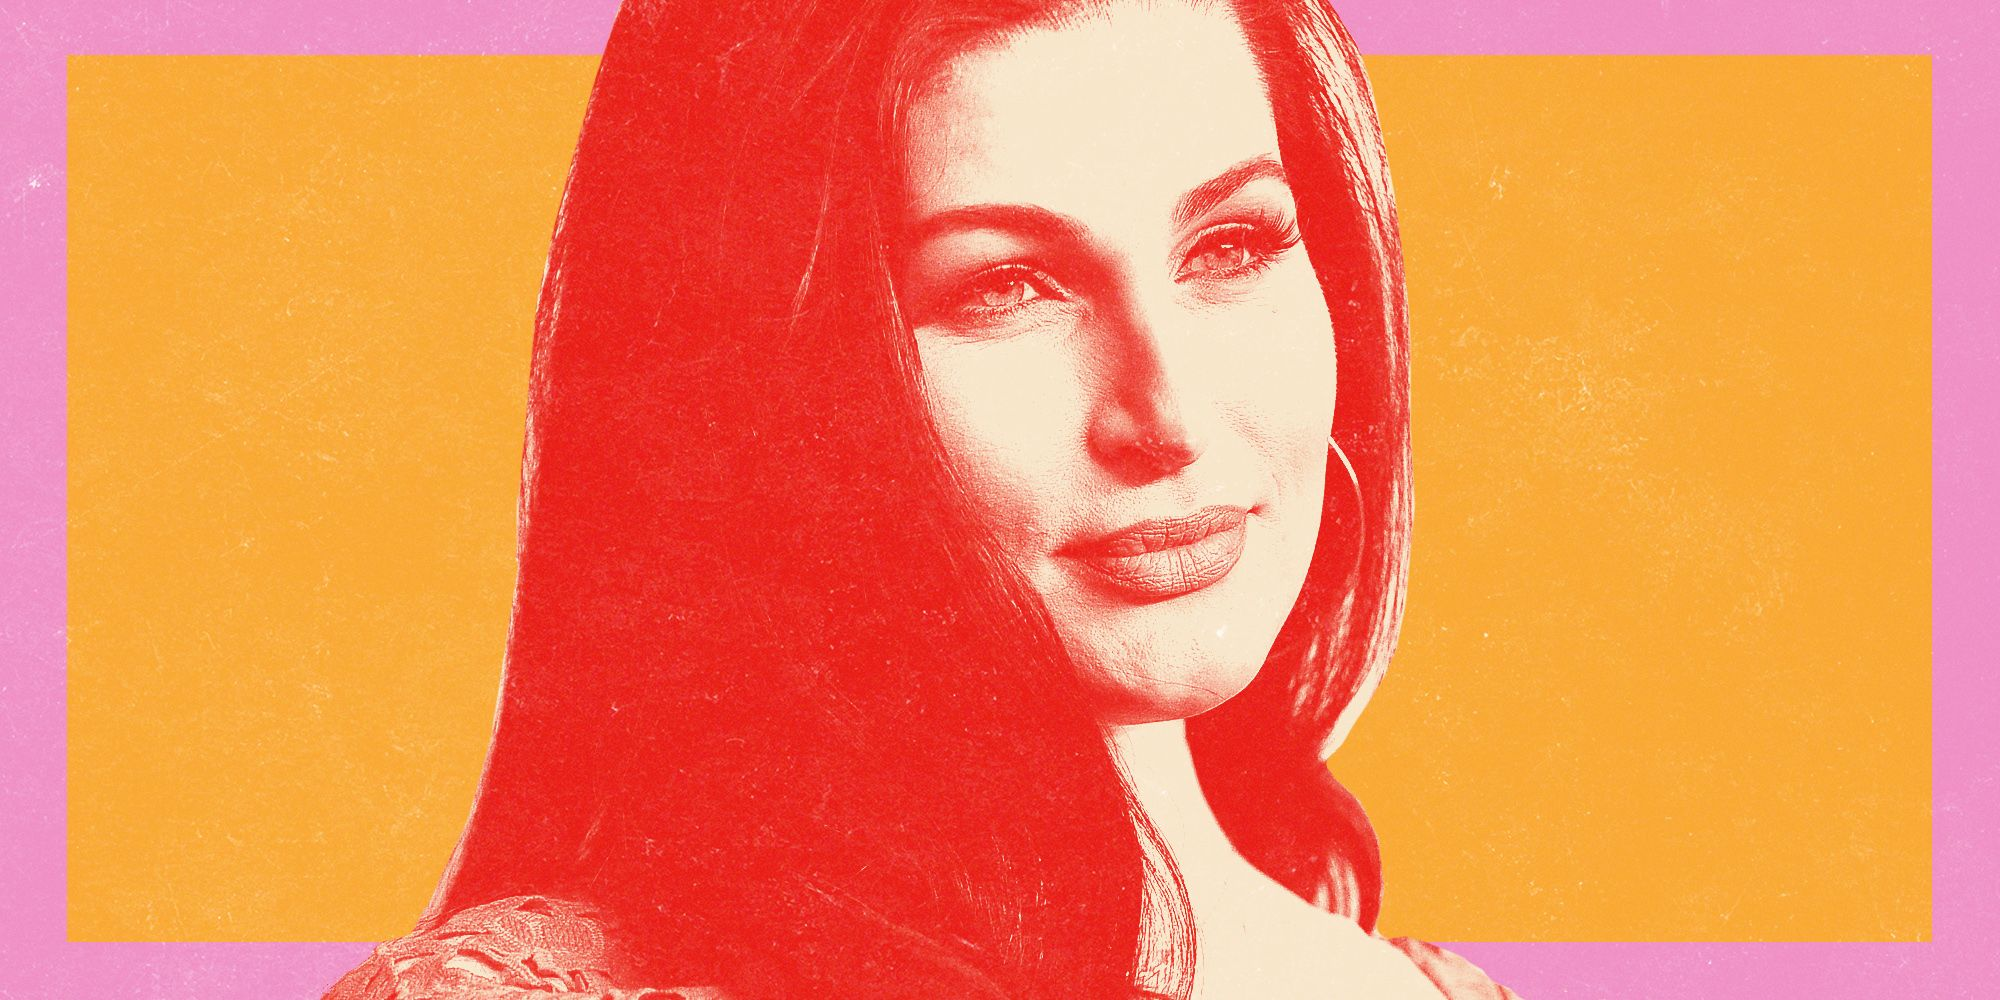 Transgender Activist Trace Lysette on What It Takes to Build an Inclusive Movement